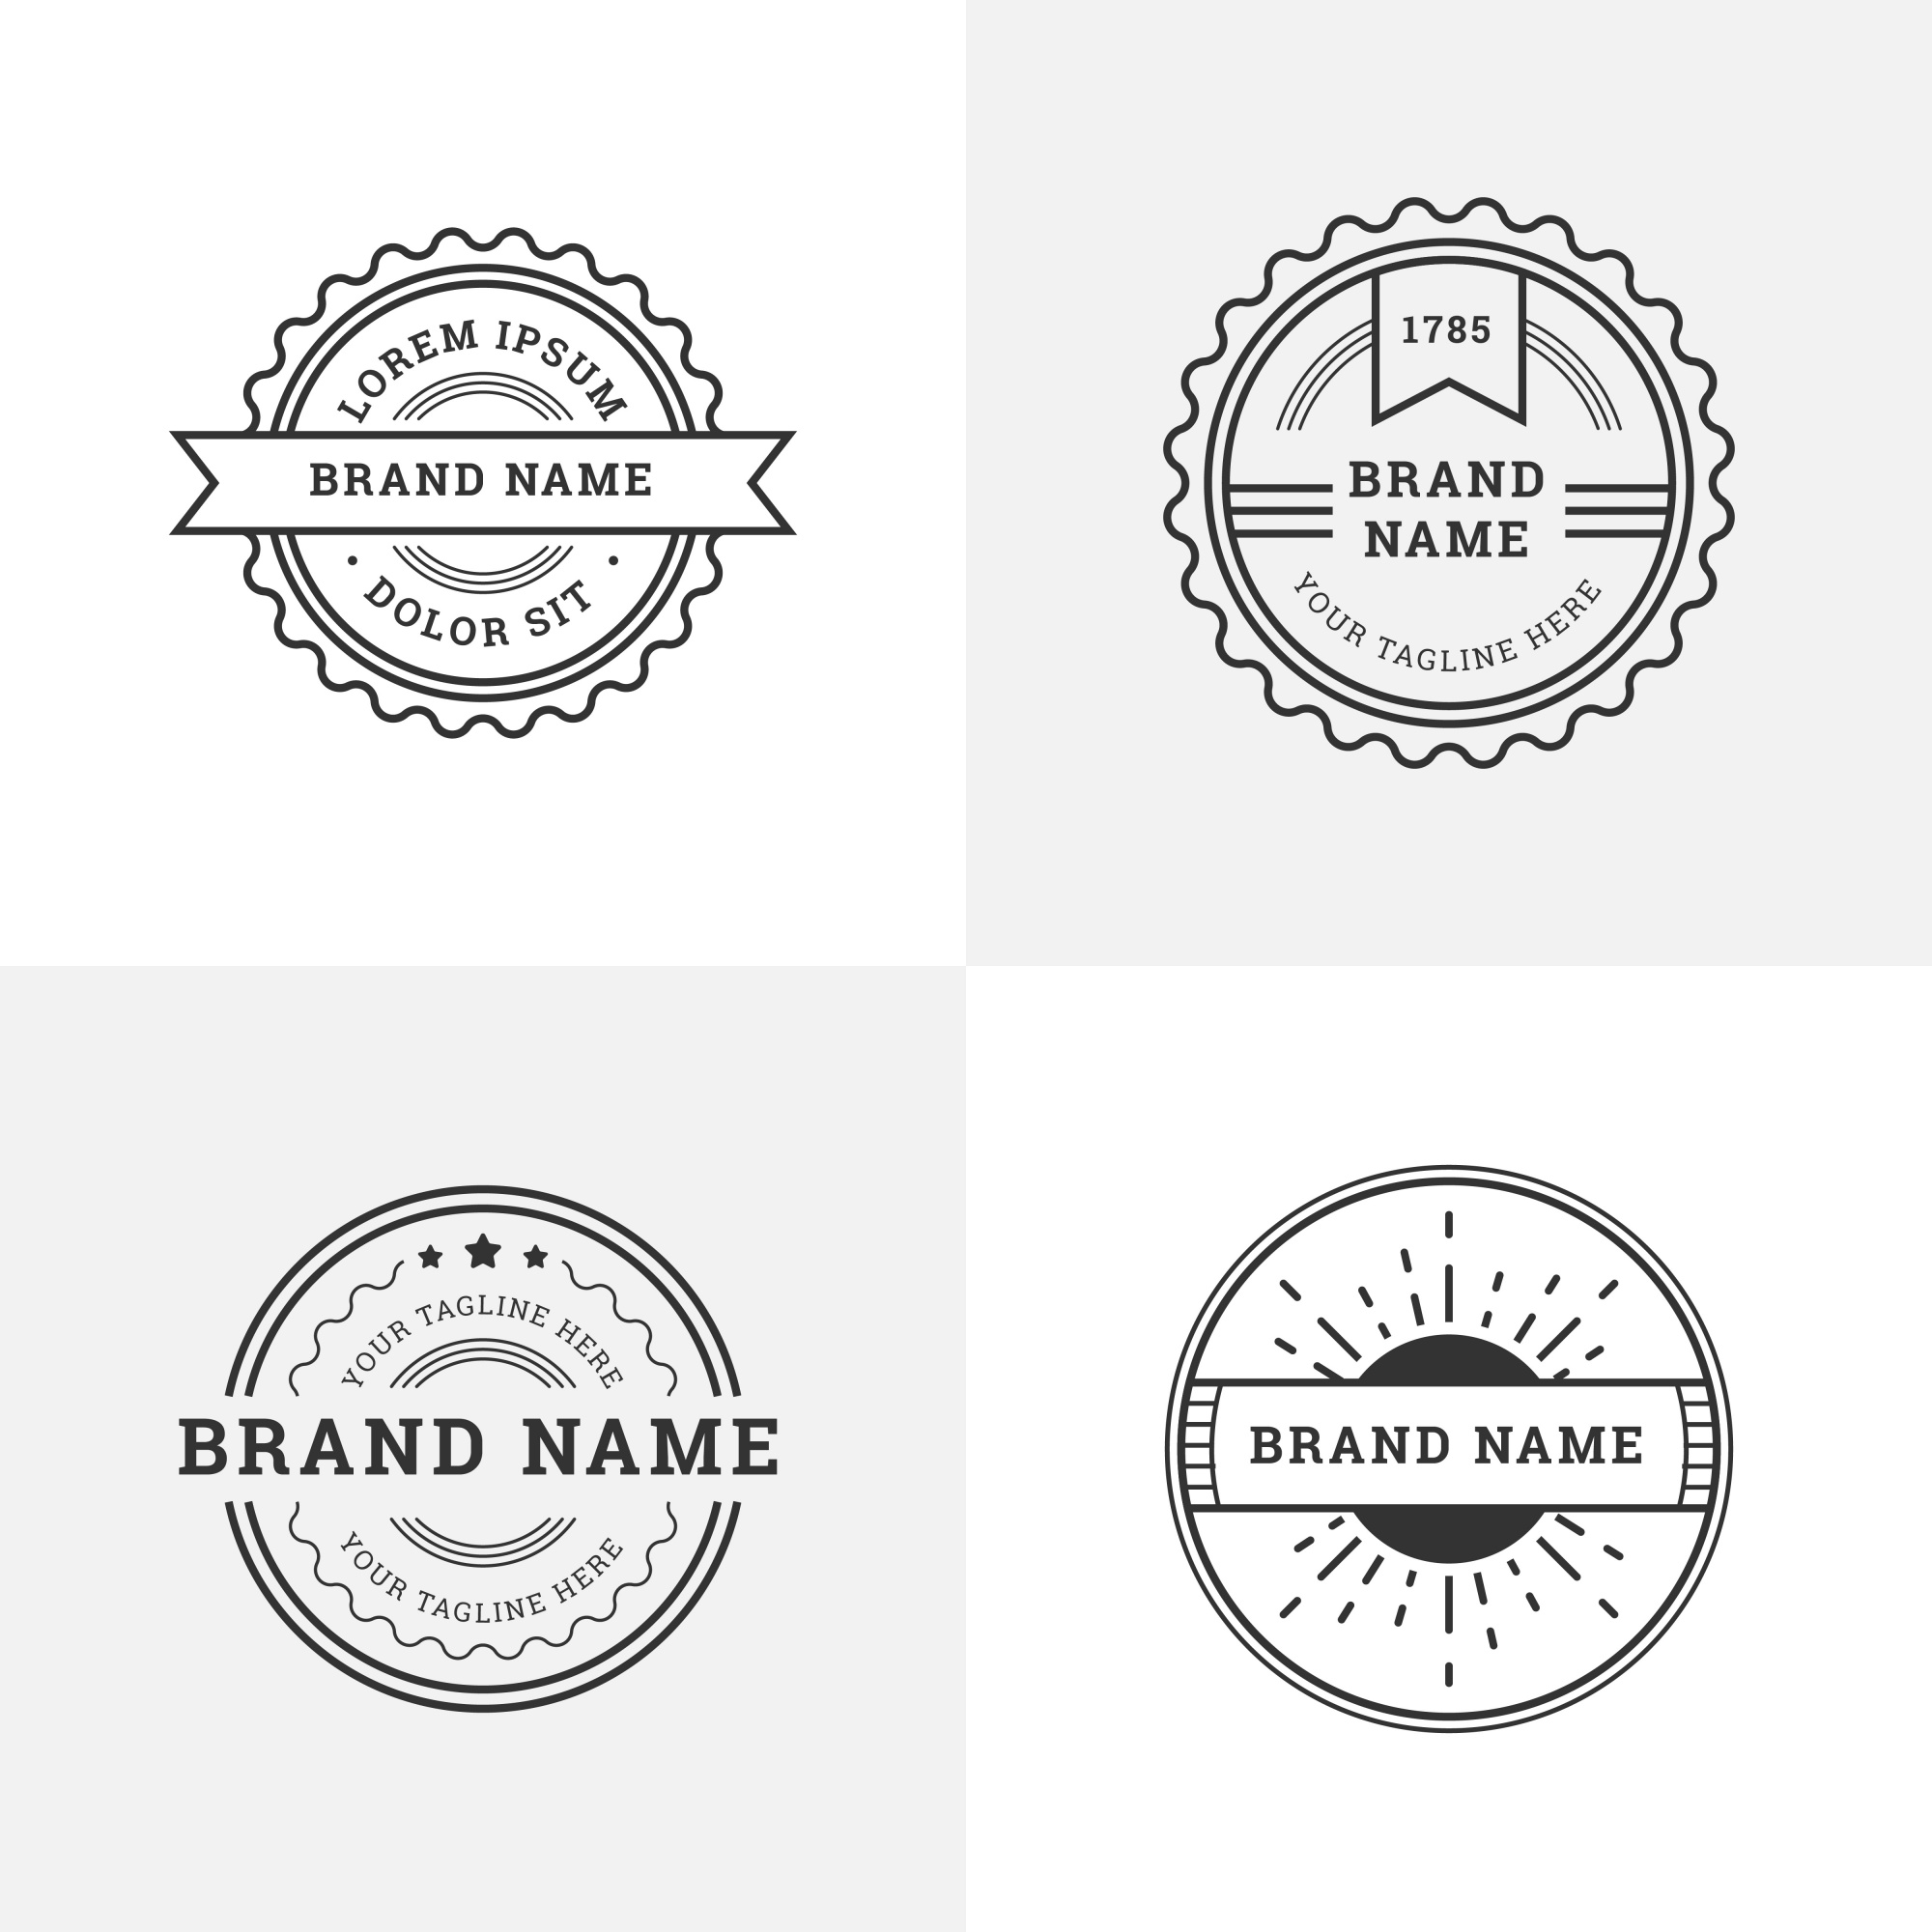 Retro logos with round shapes